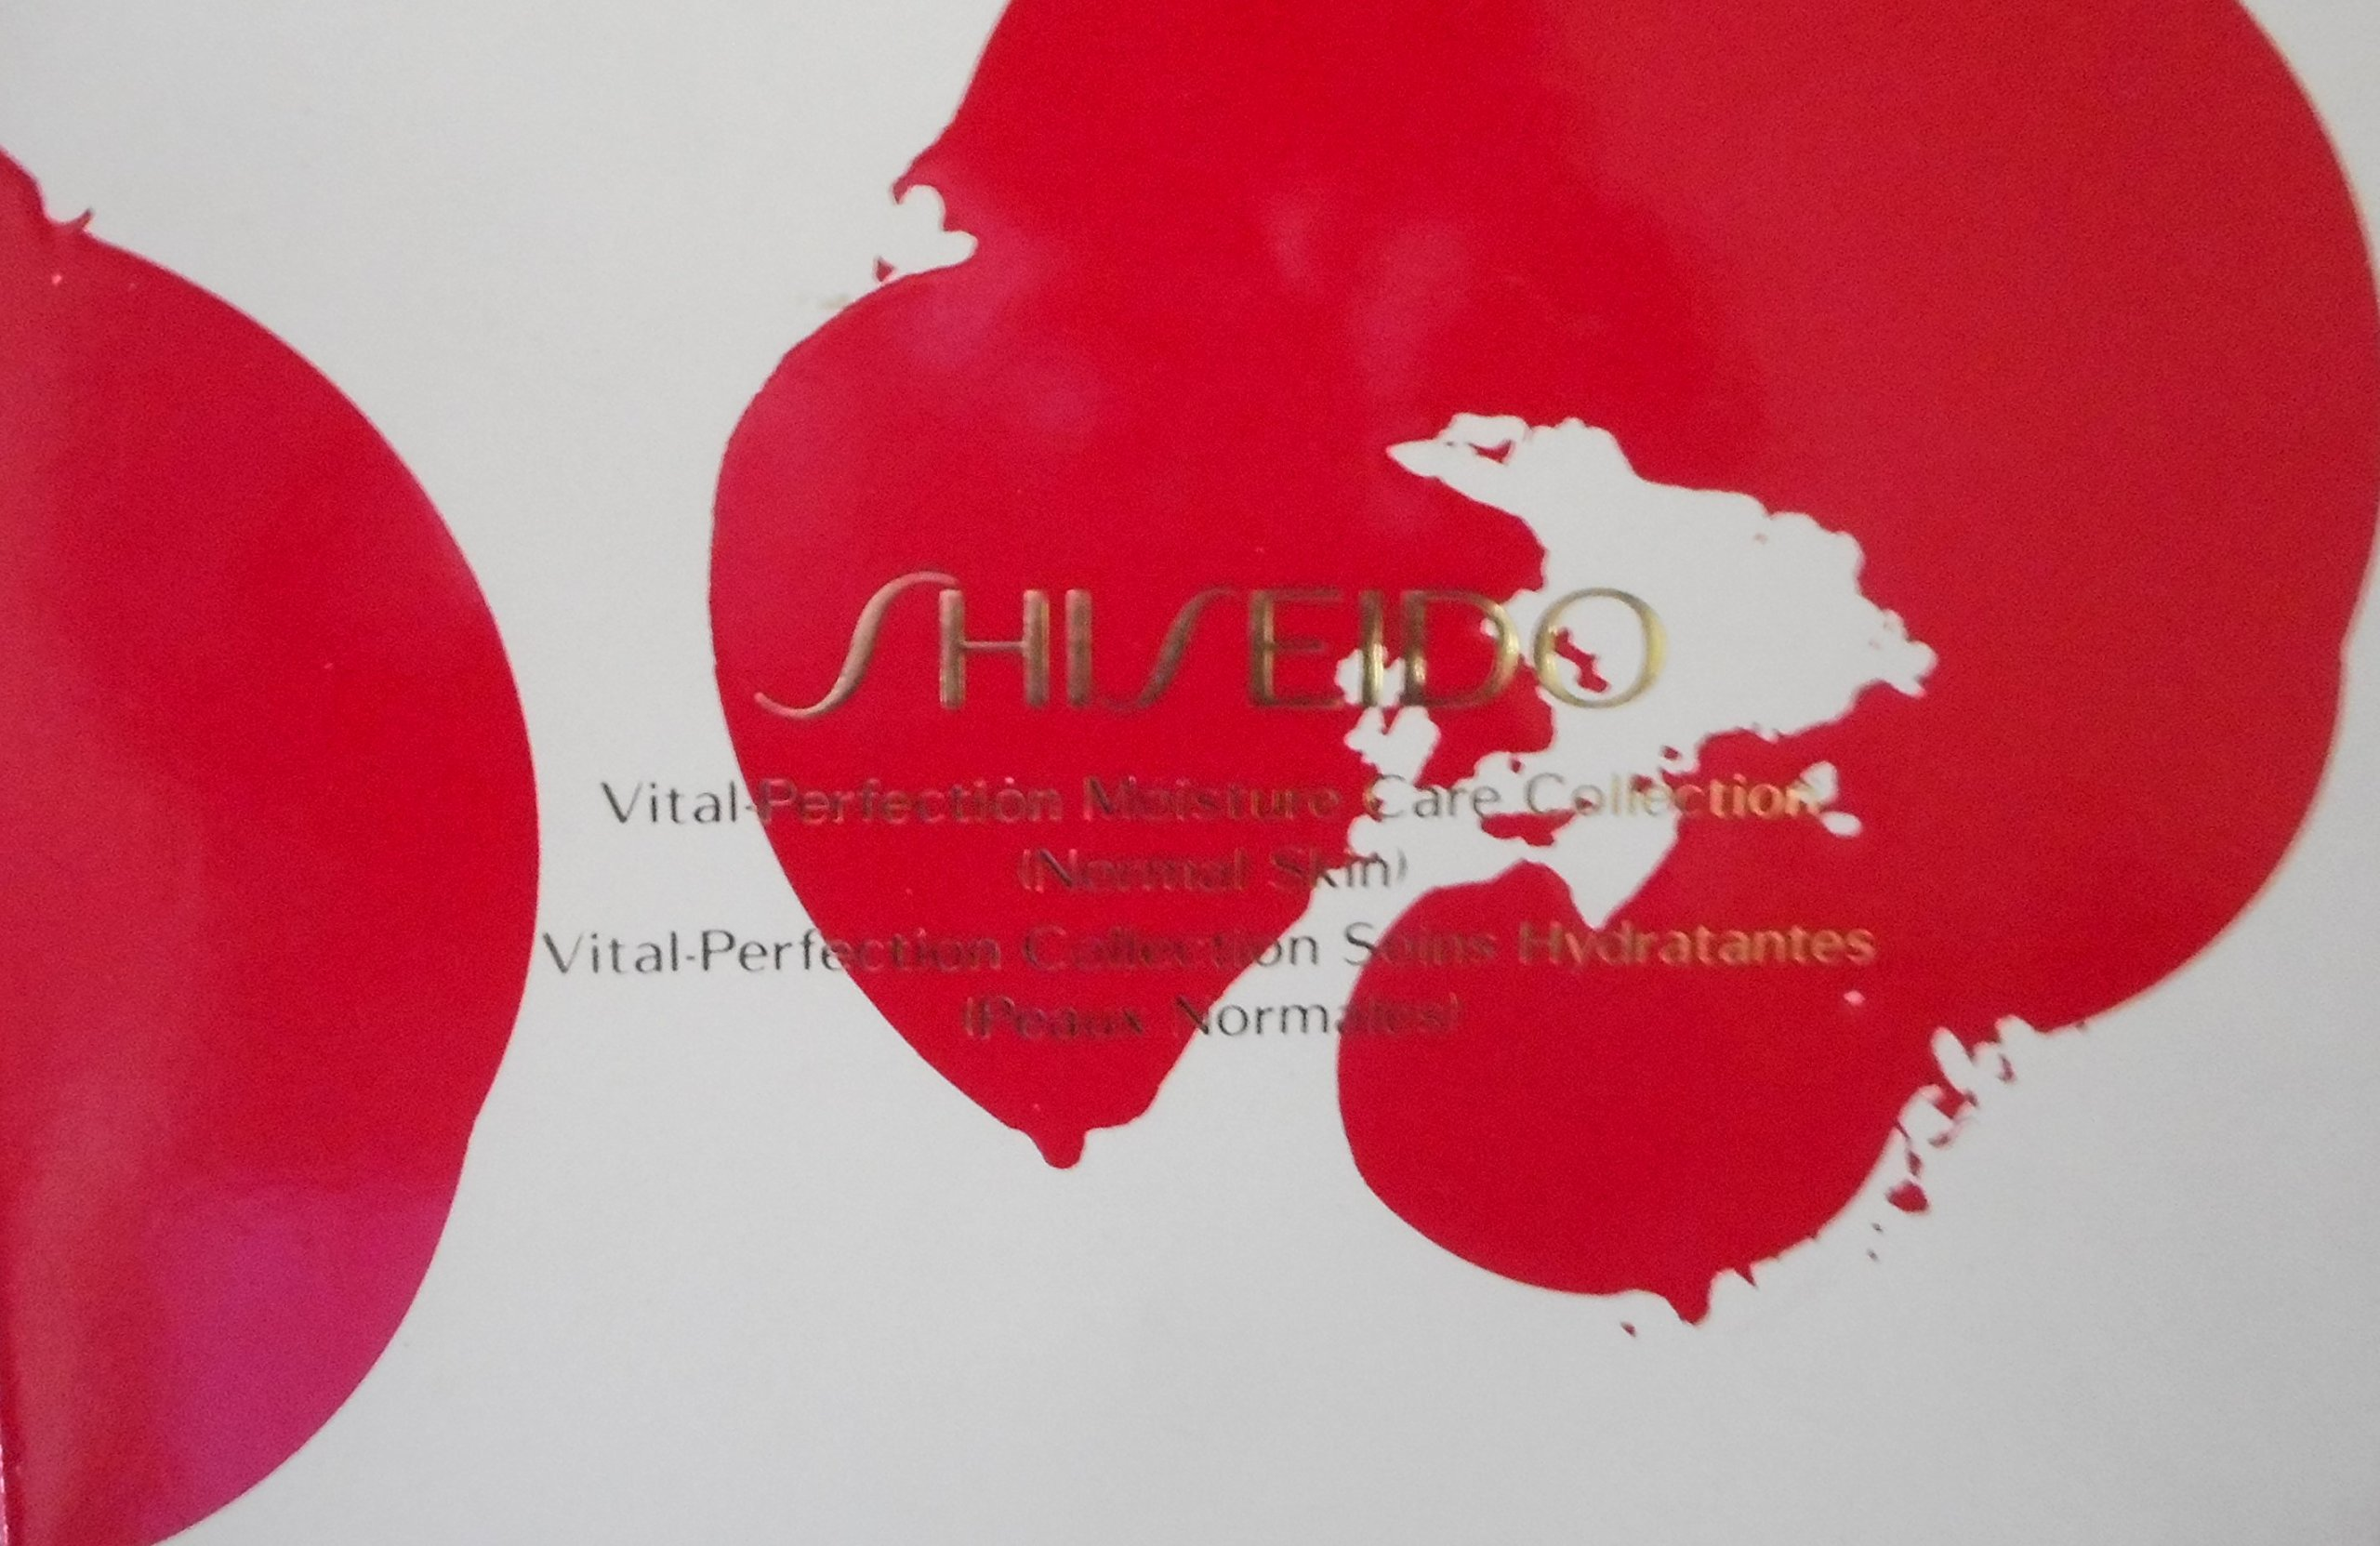 Shiseido Vital-Protection Moisture Care Collection 5pc Travel Set: Emulsion, Cleansing, Lotion, Mask by Shiseido (Image #2)